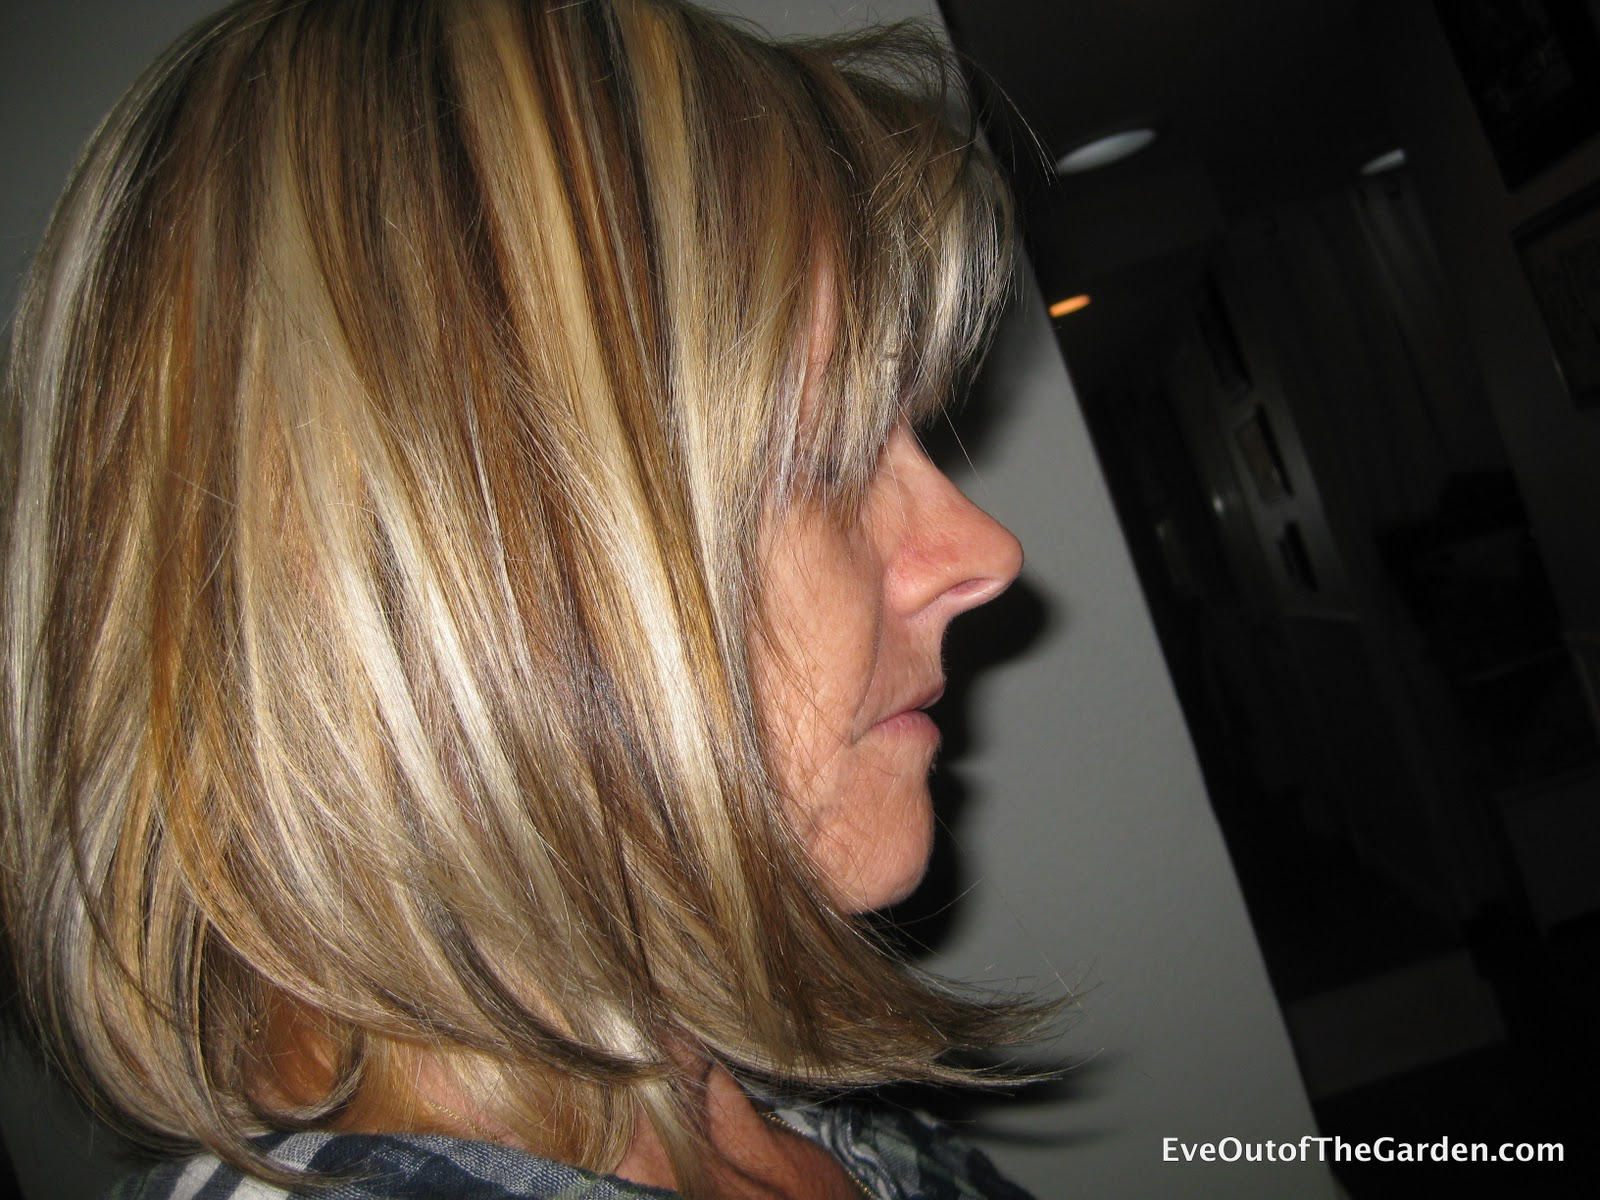 Blonde Highlights And Lowlights Eve Out Of The Garden